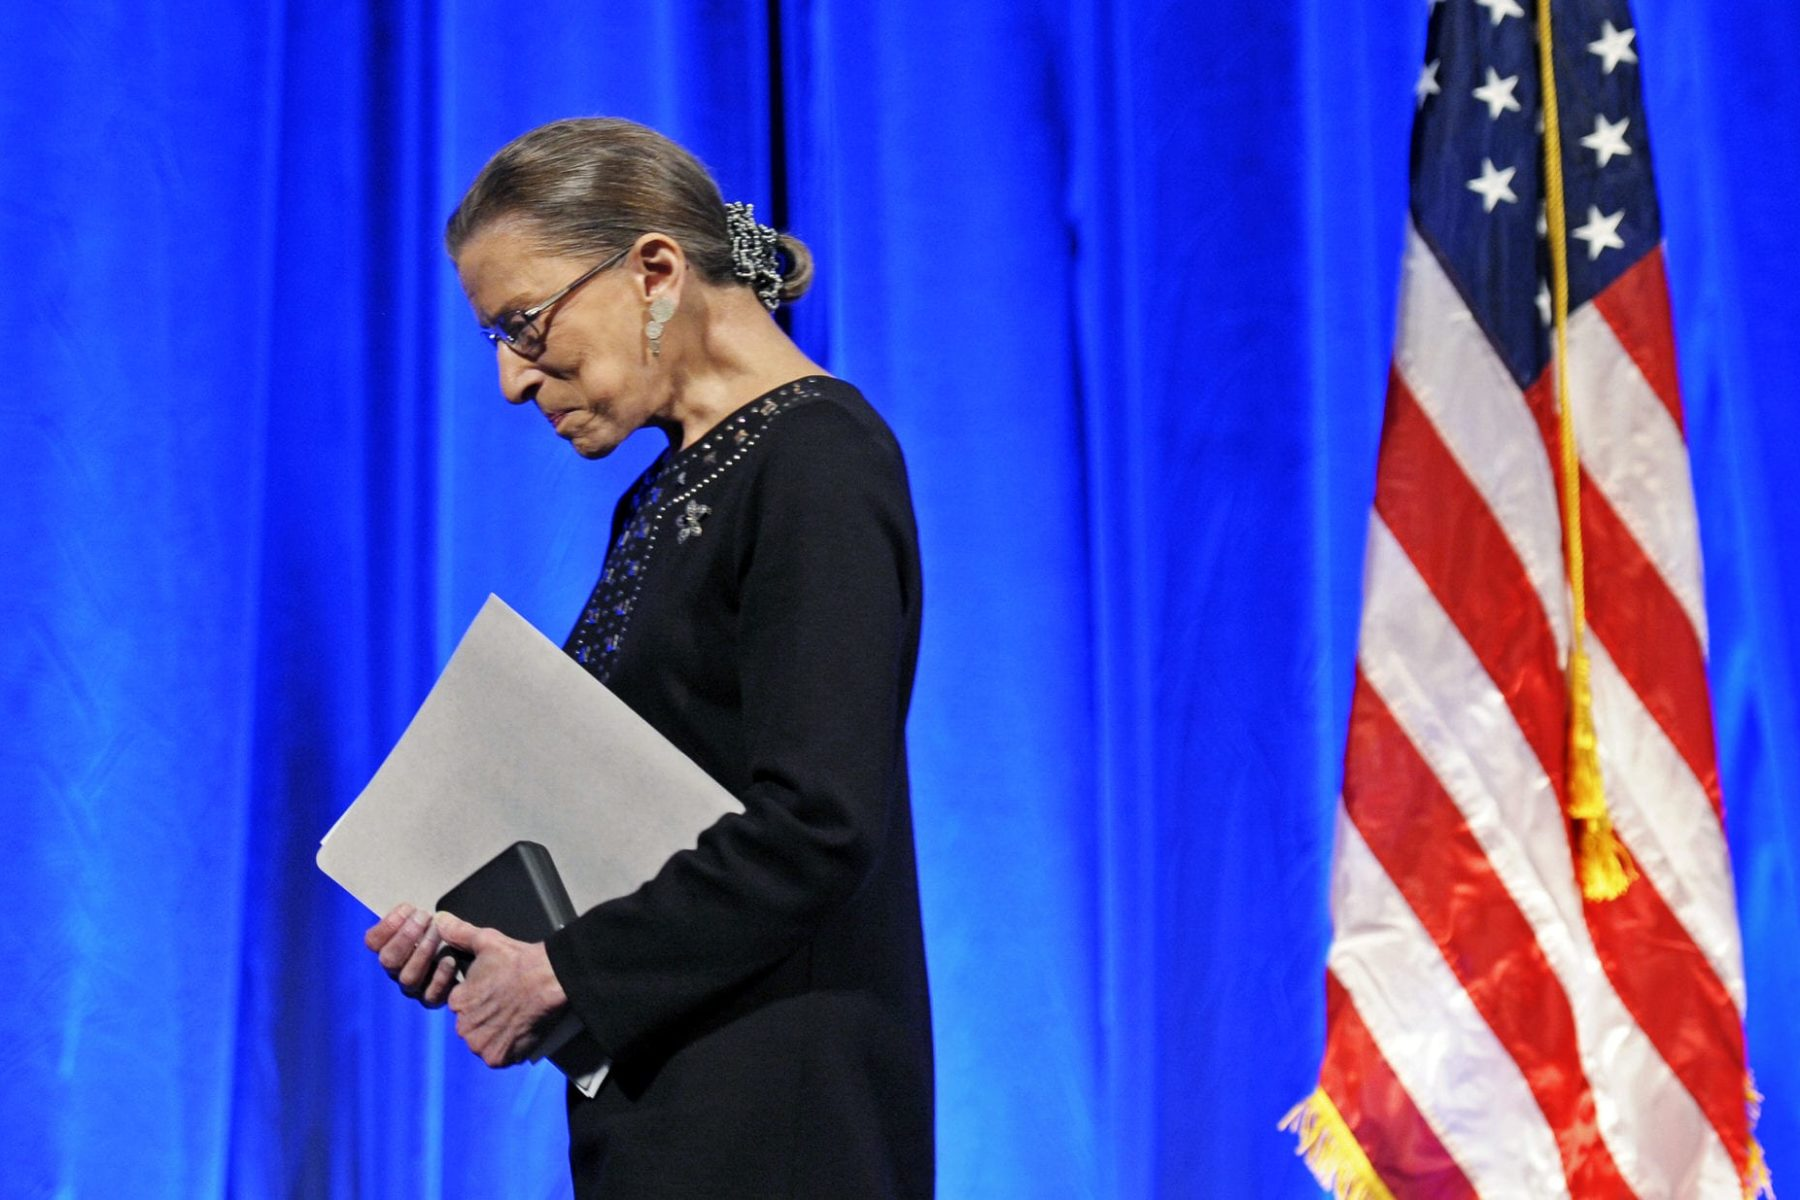 Ruth Bader Ginsburg on stage.